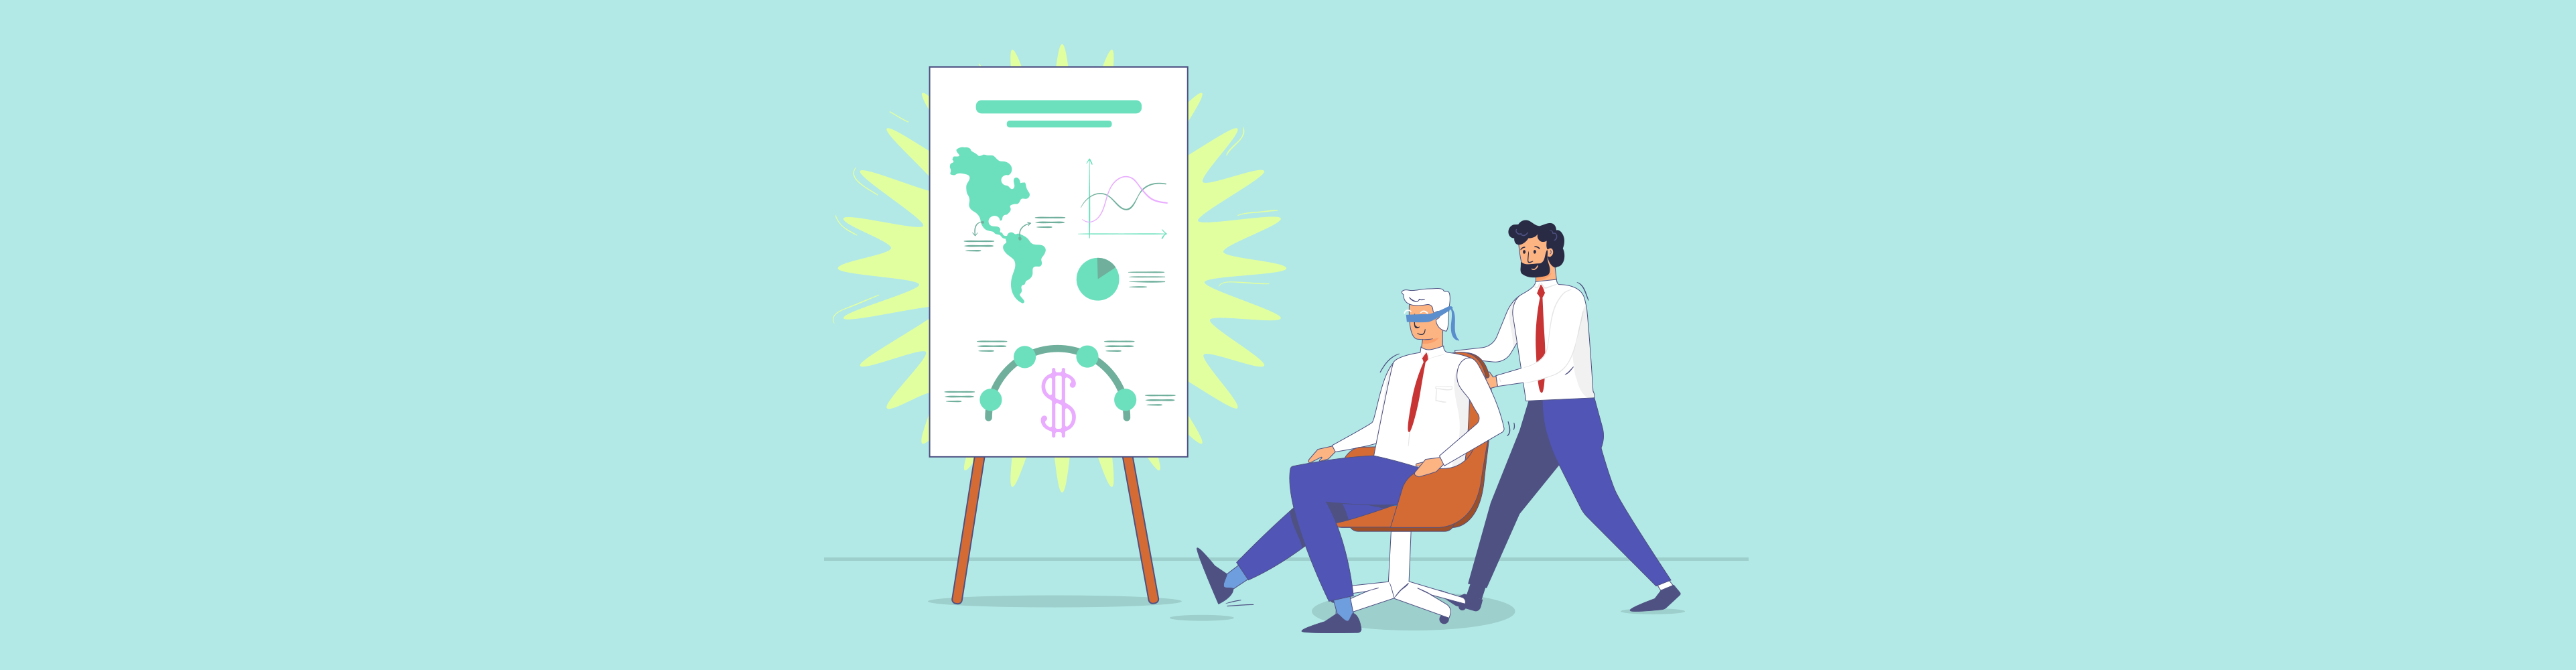 how to design an infographic to impress your boss - header wide